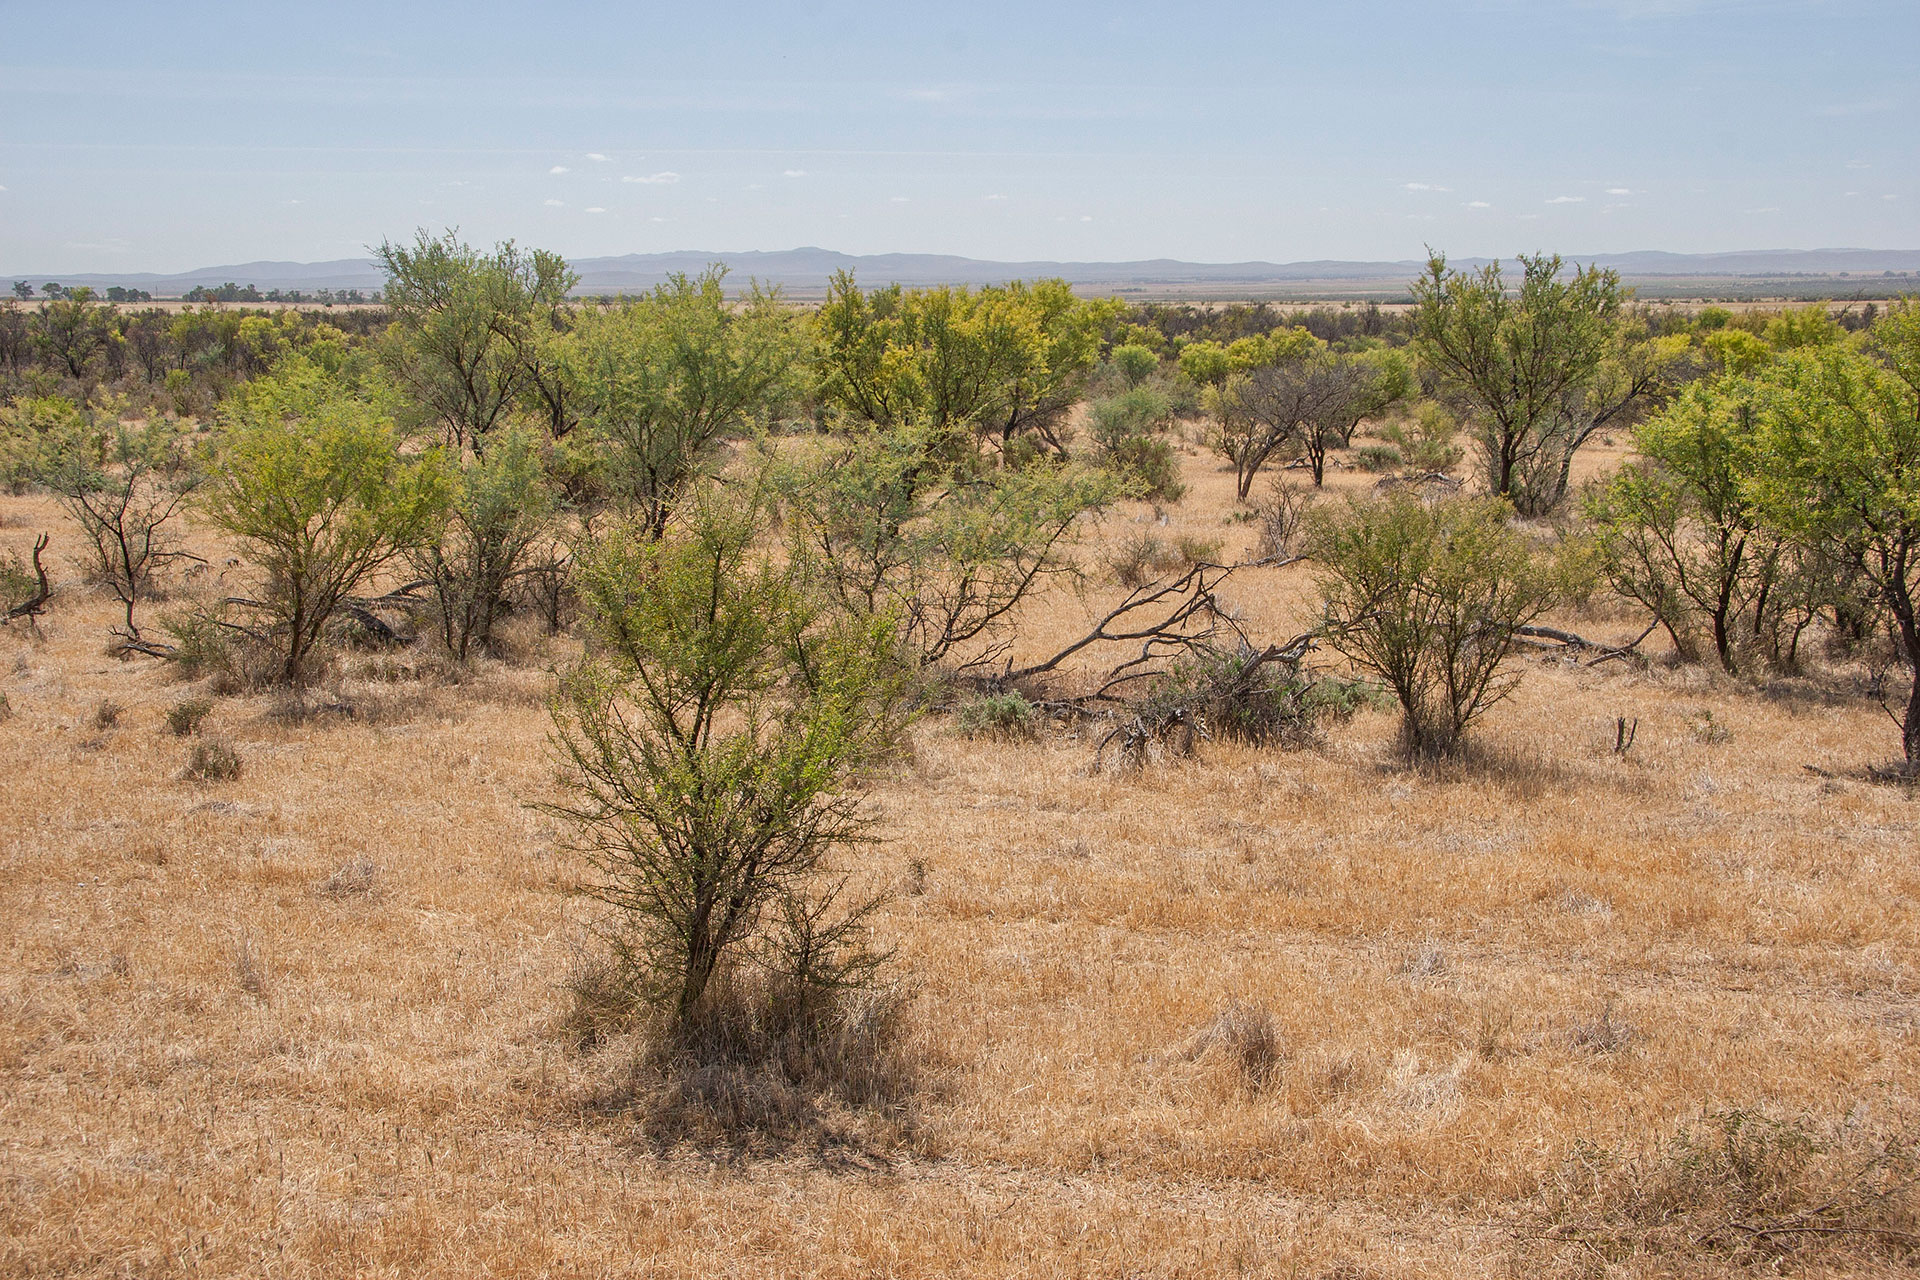 Crops fields turn to shrubland.